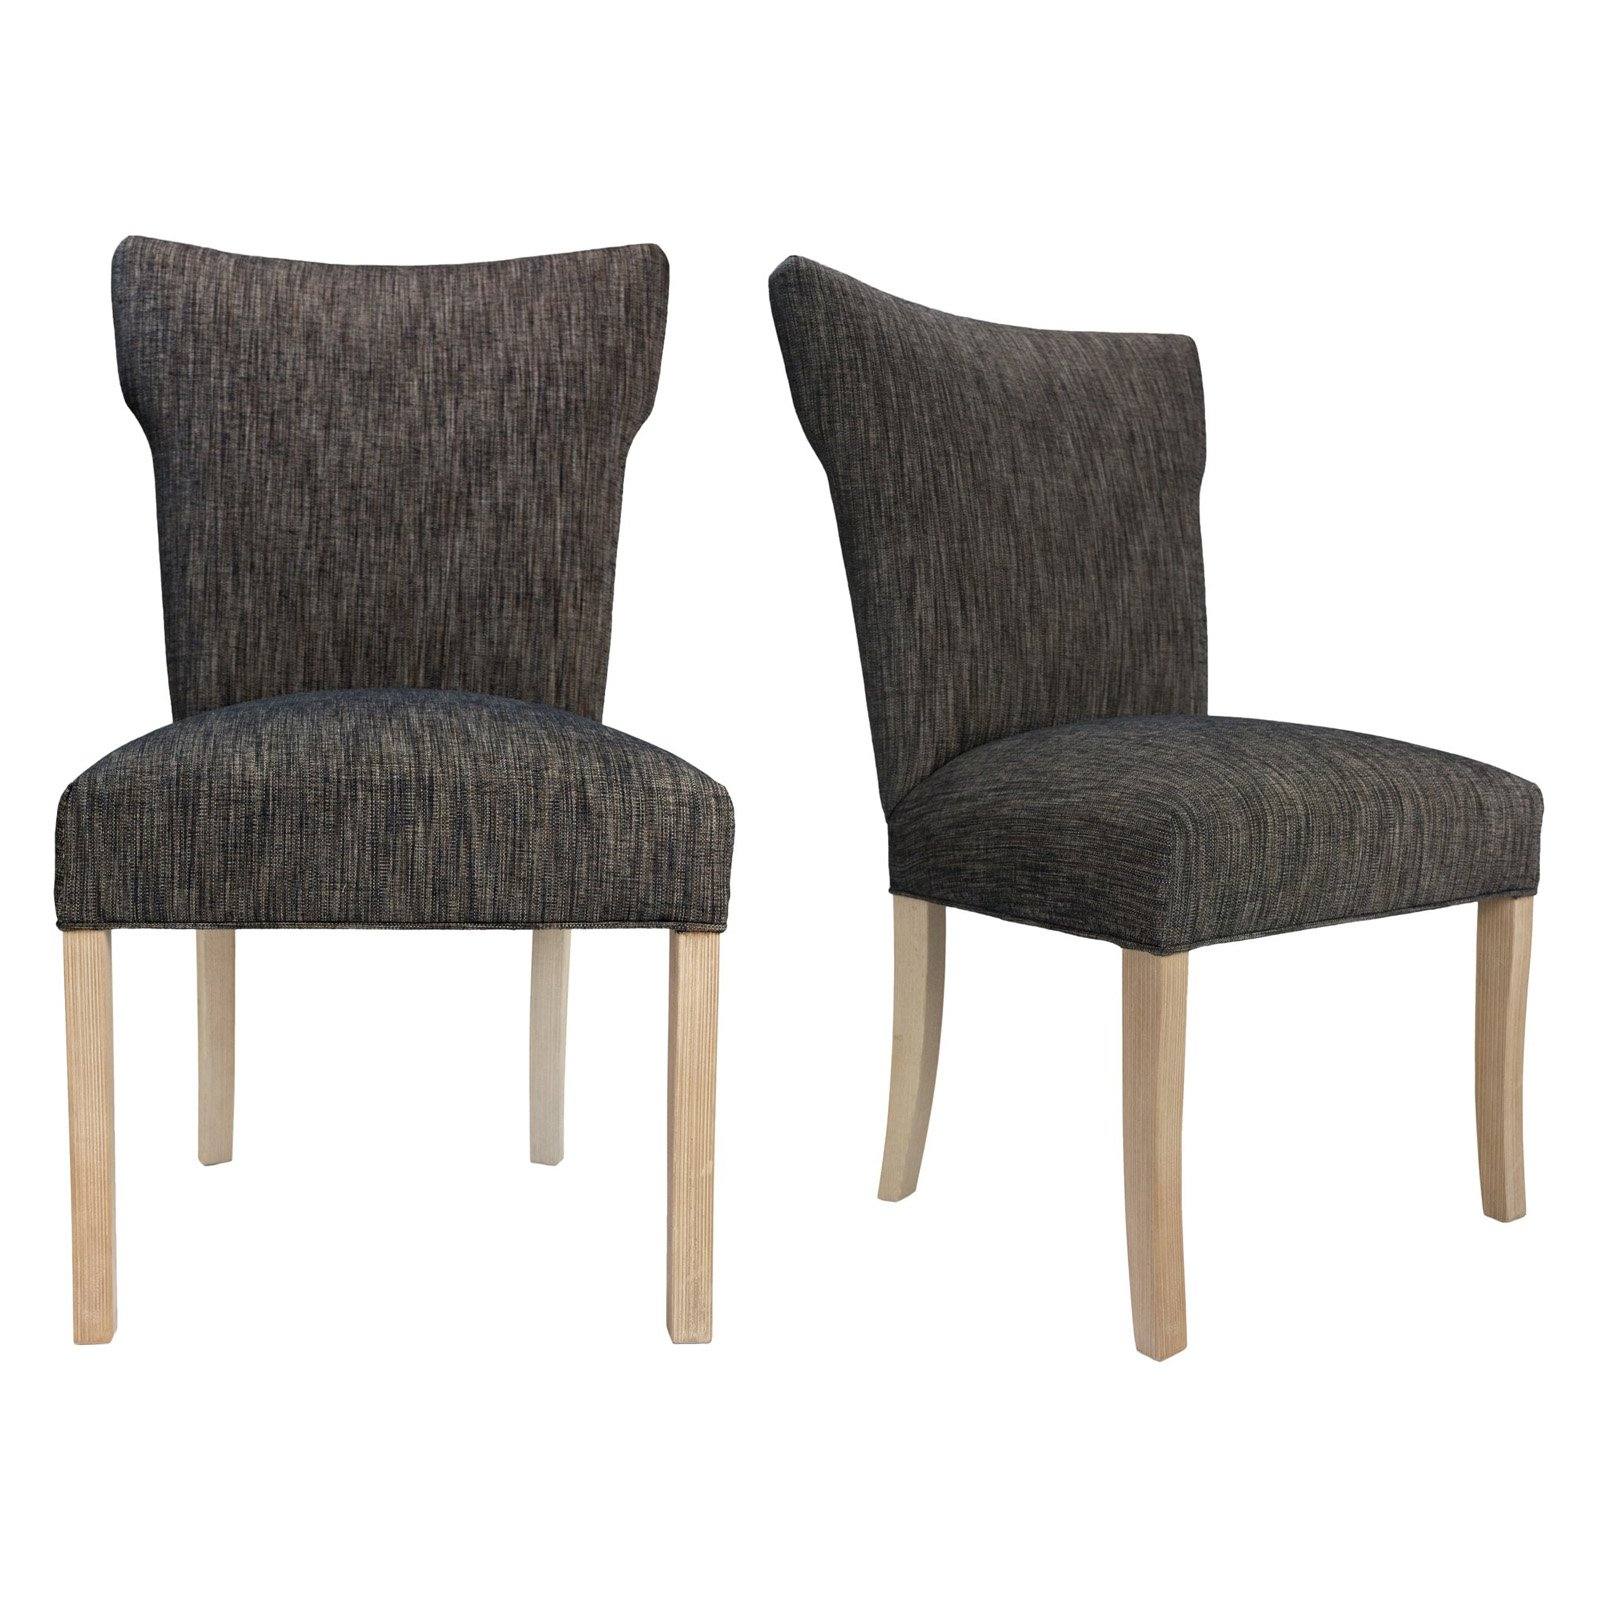 Sole Designs Bella Collection Upholstered Wing Back Armless Dining Side Chair with Natural Legs and Spring Seating - Set of 2